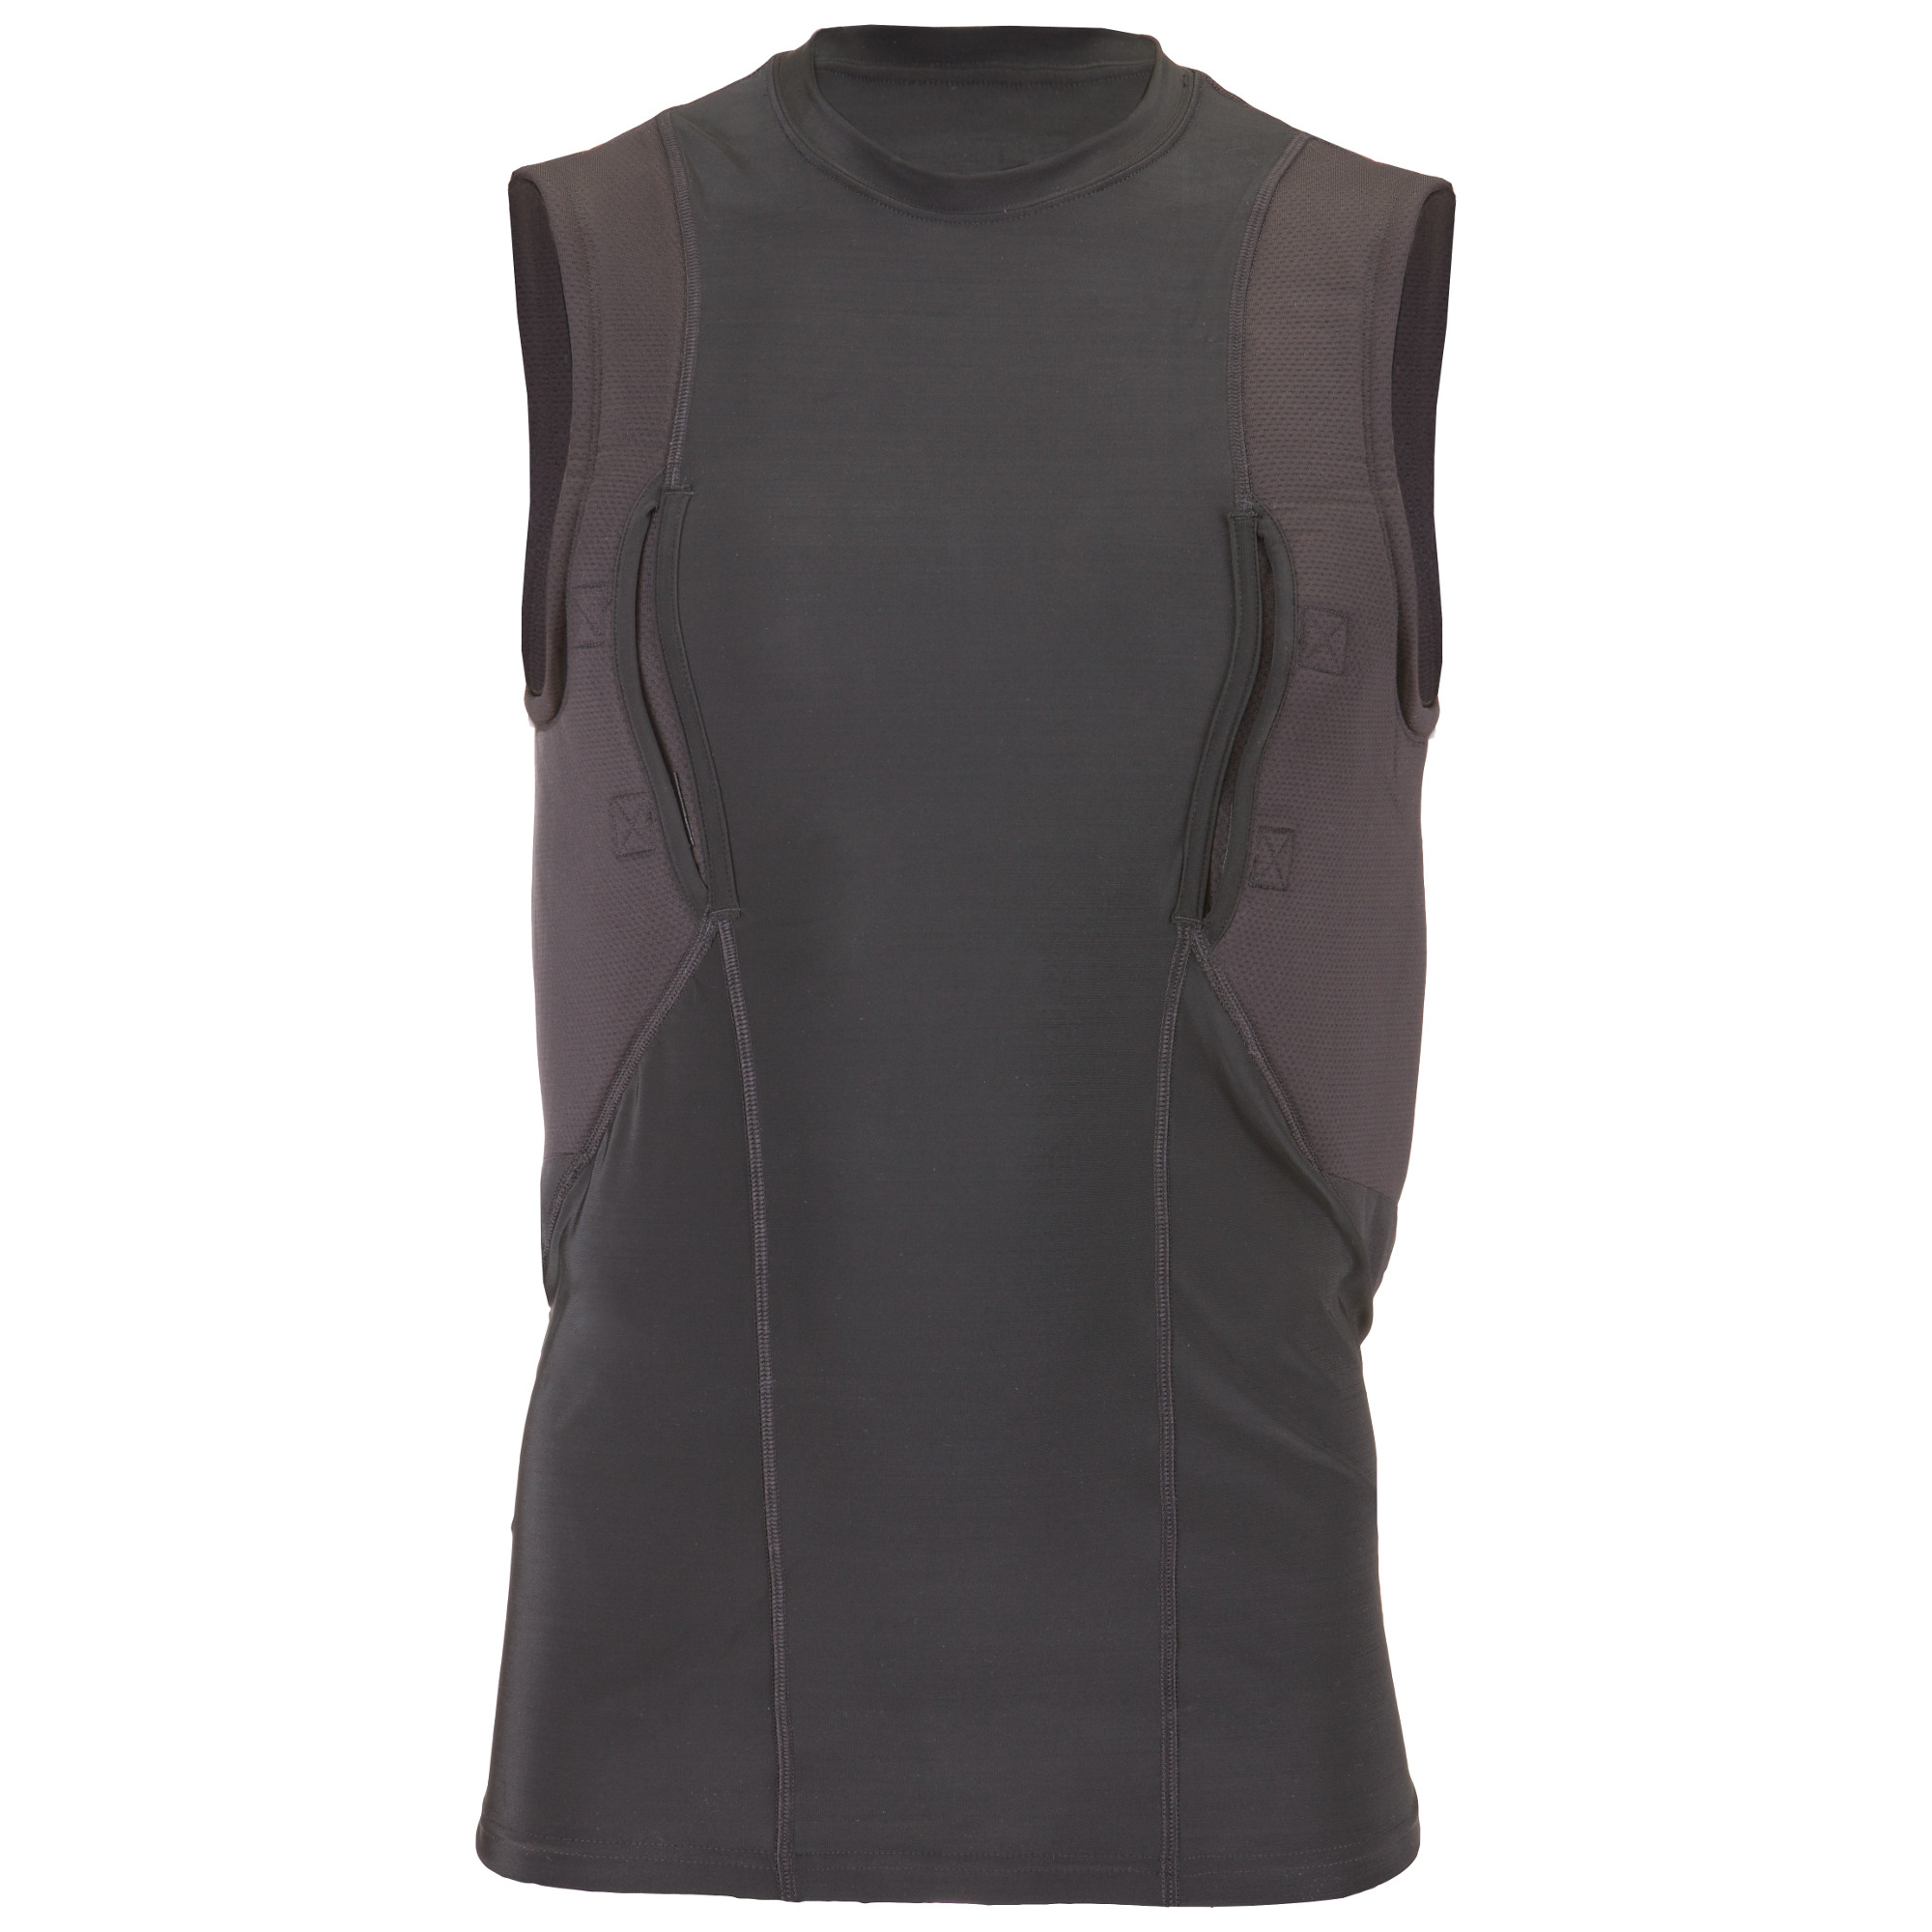 5.11 Mens Sleeveless Holster Shirt 40107